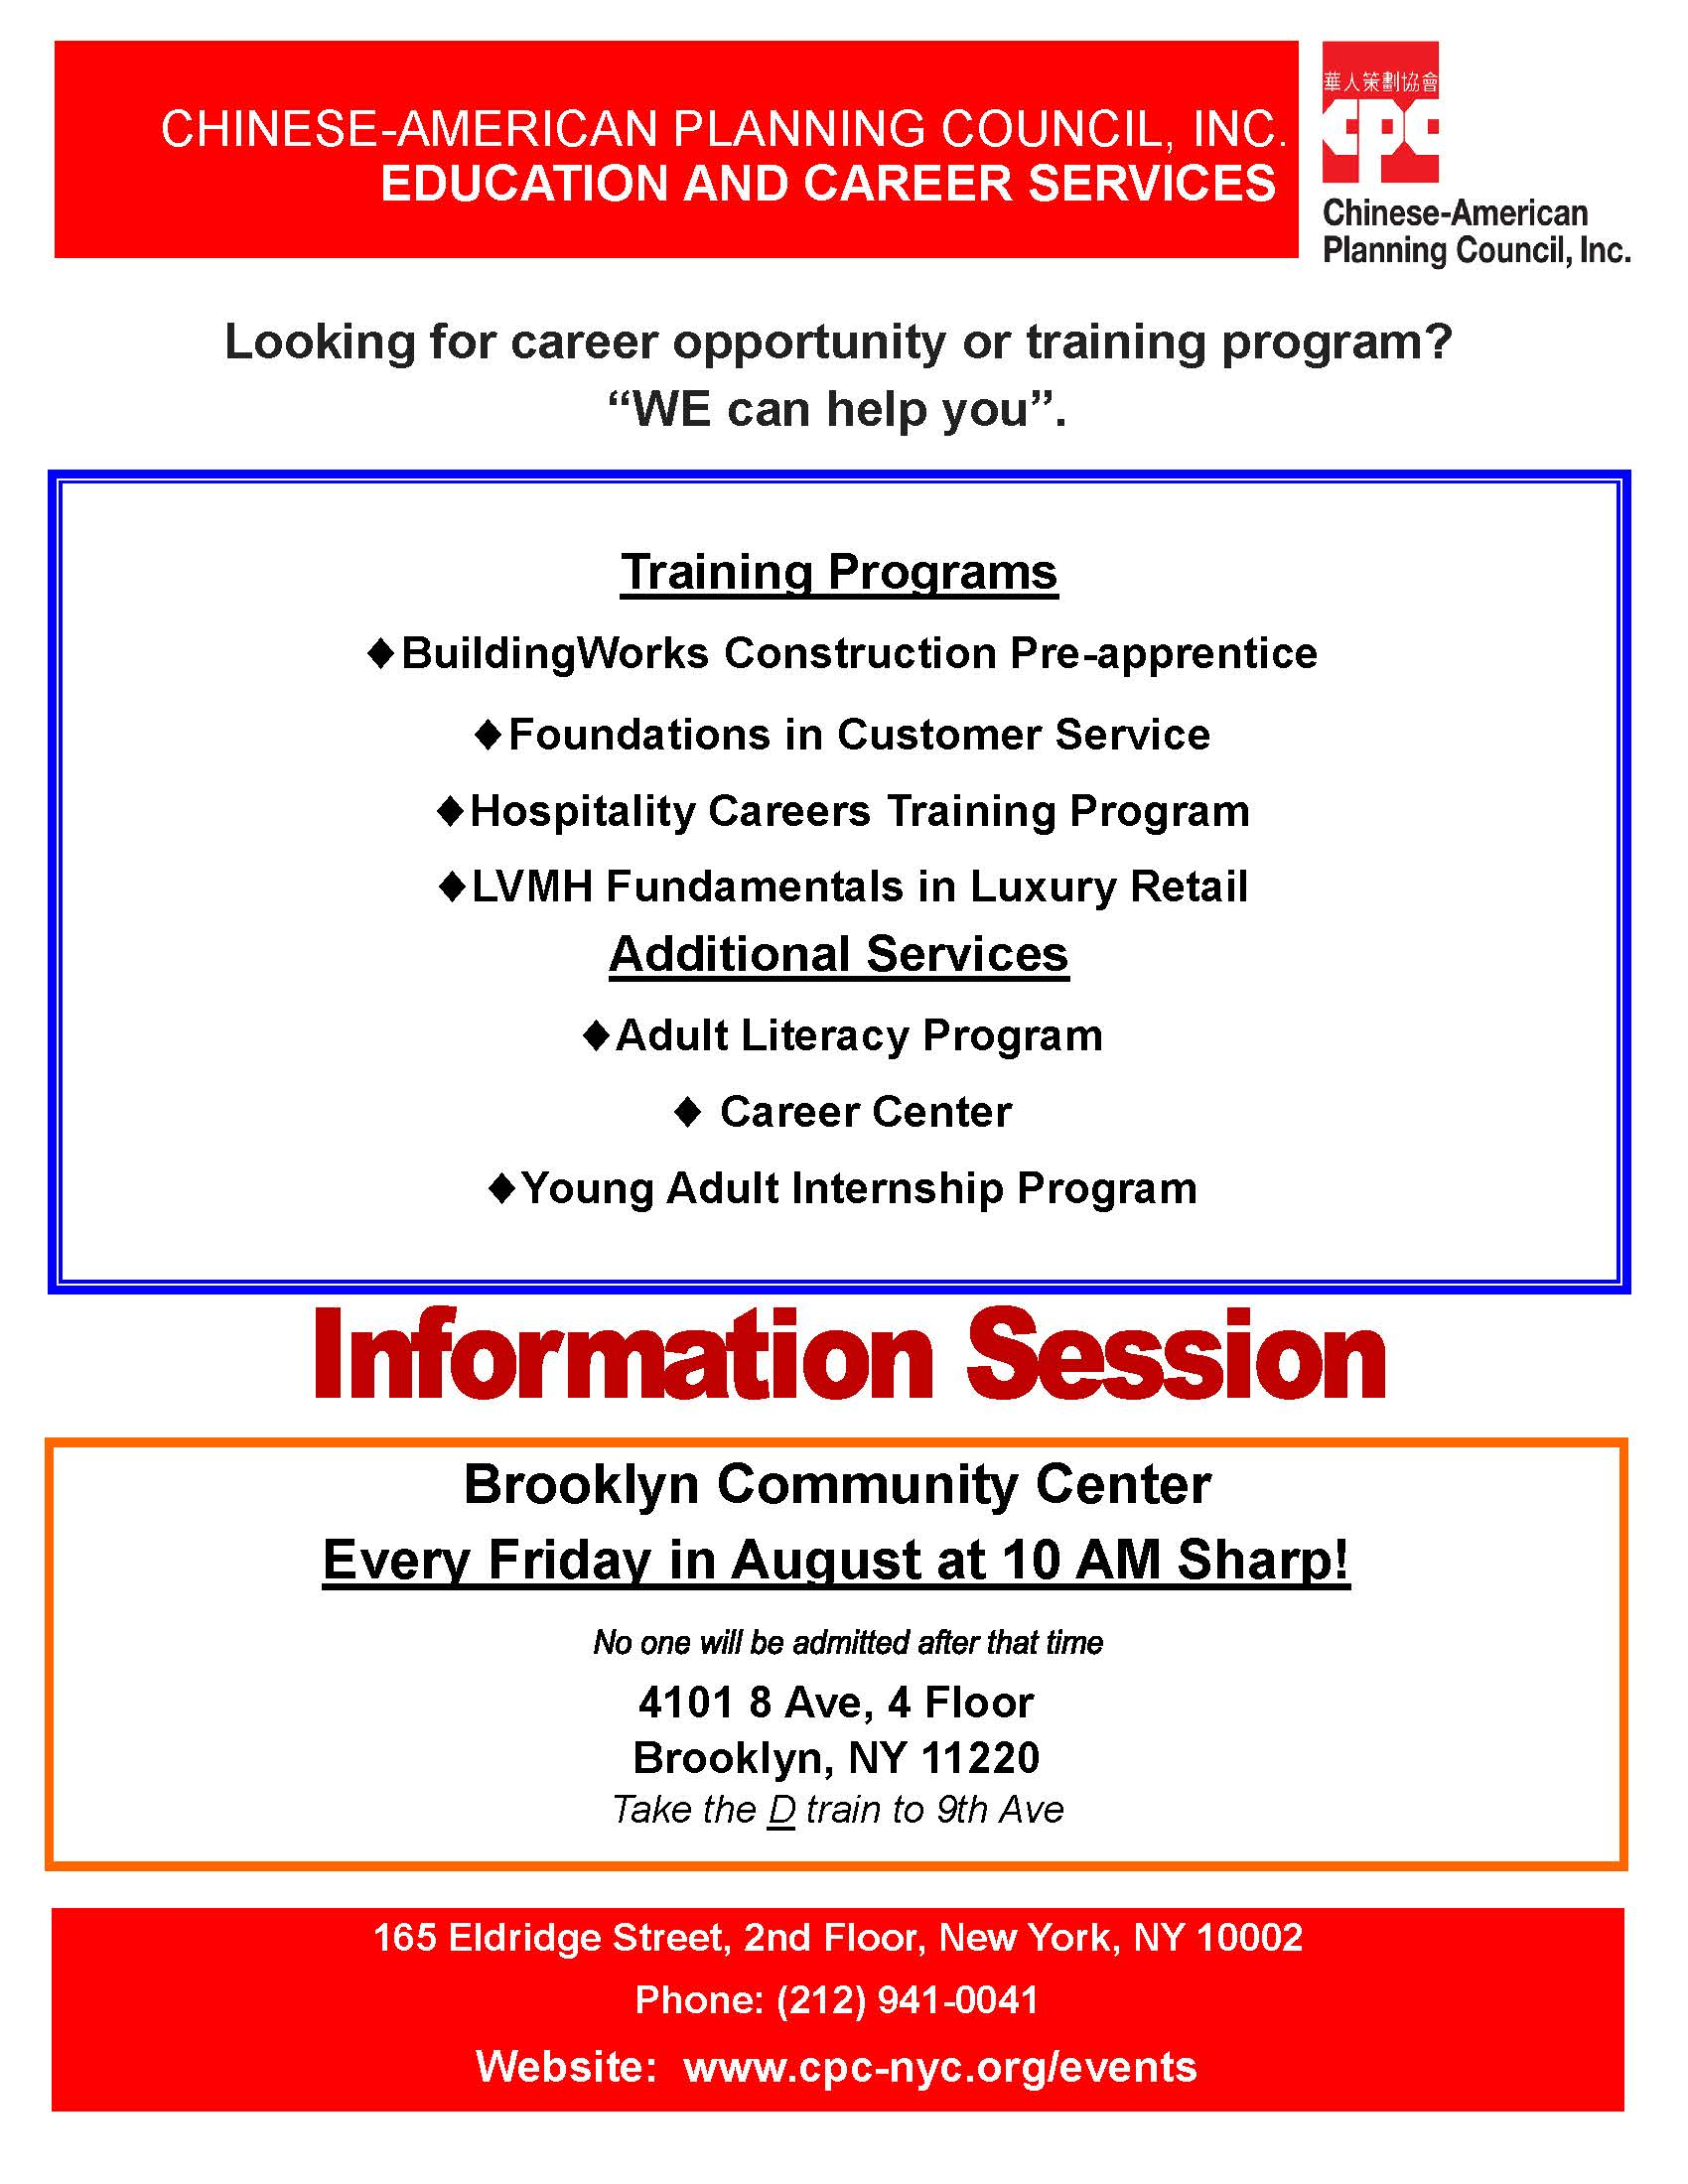 Education and Career Services Brooklyn Information Session